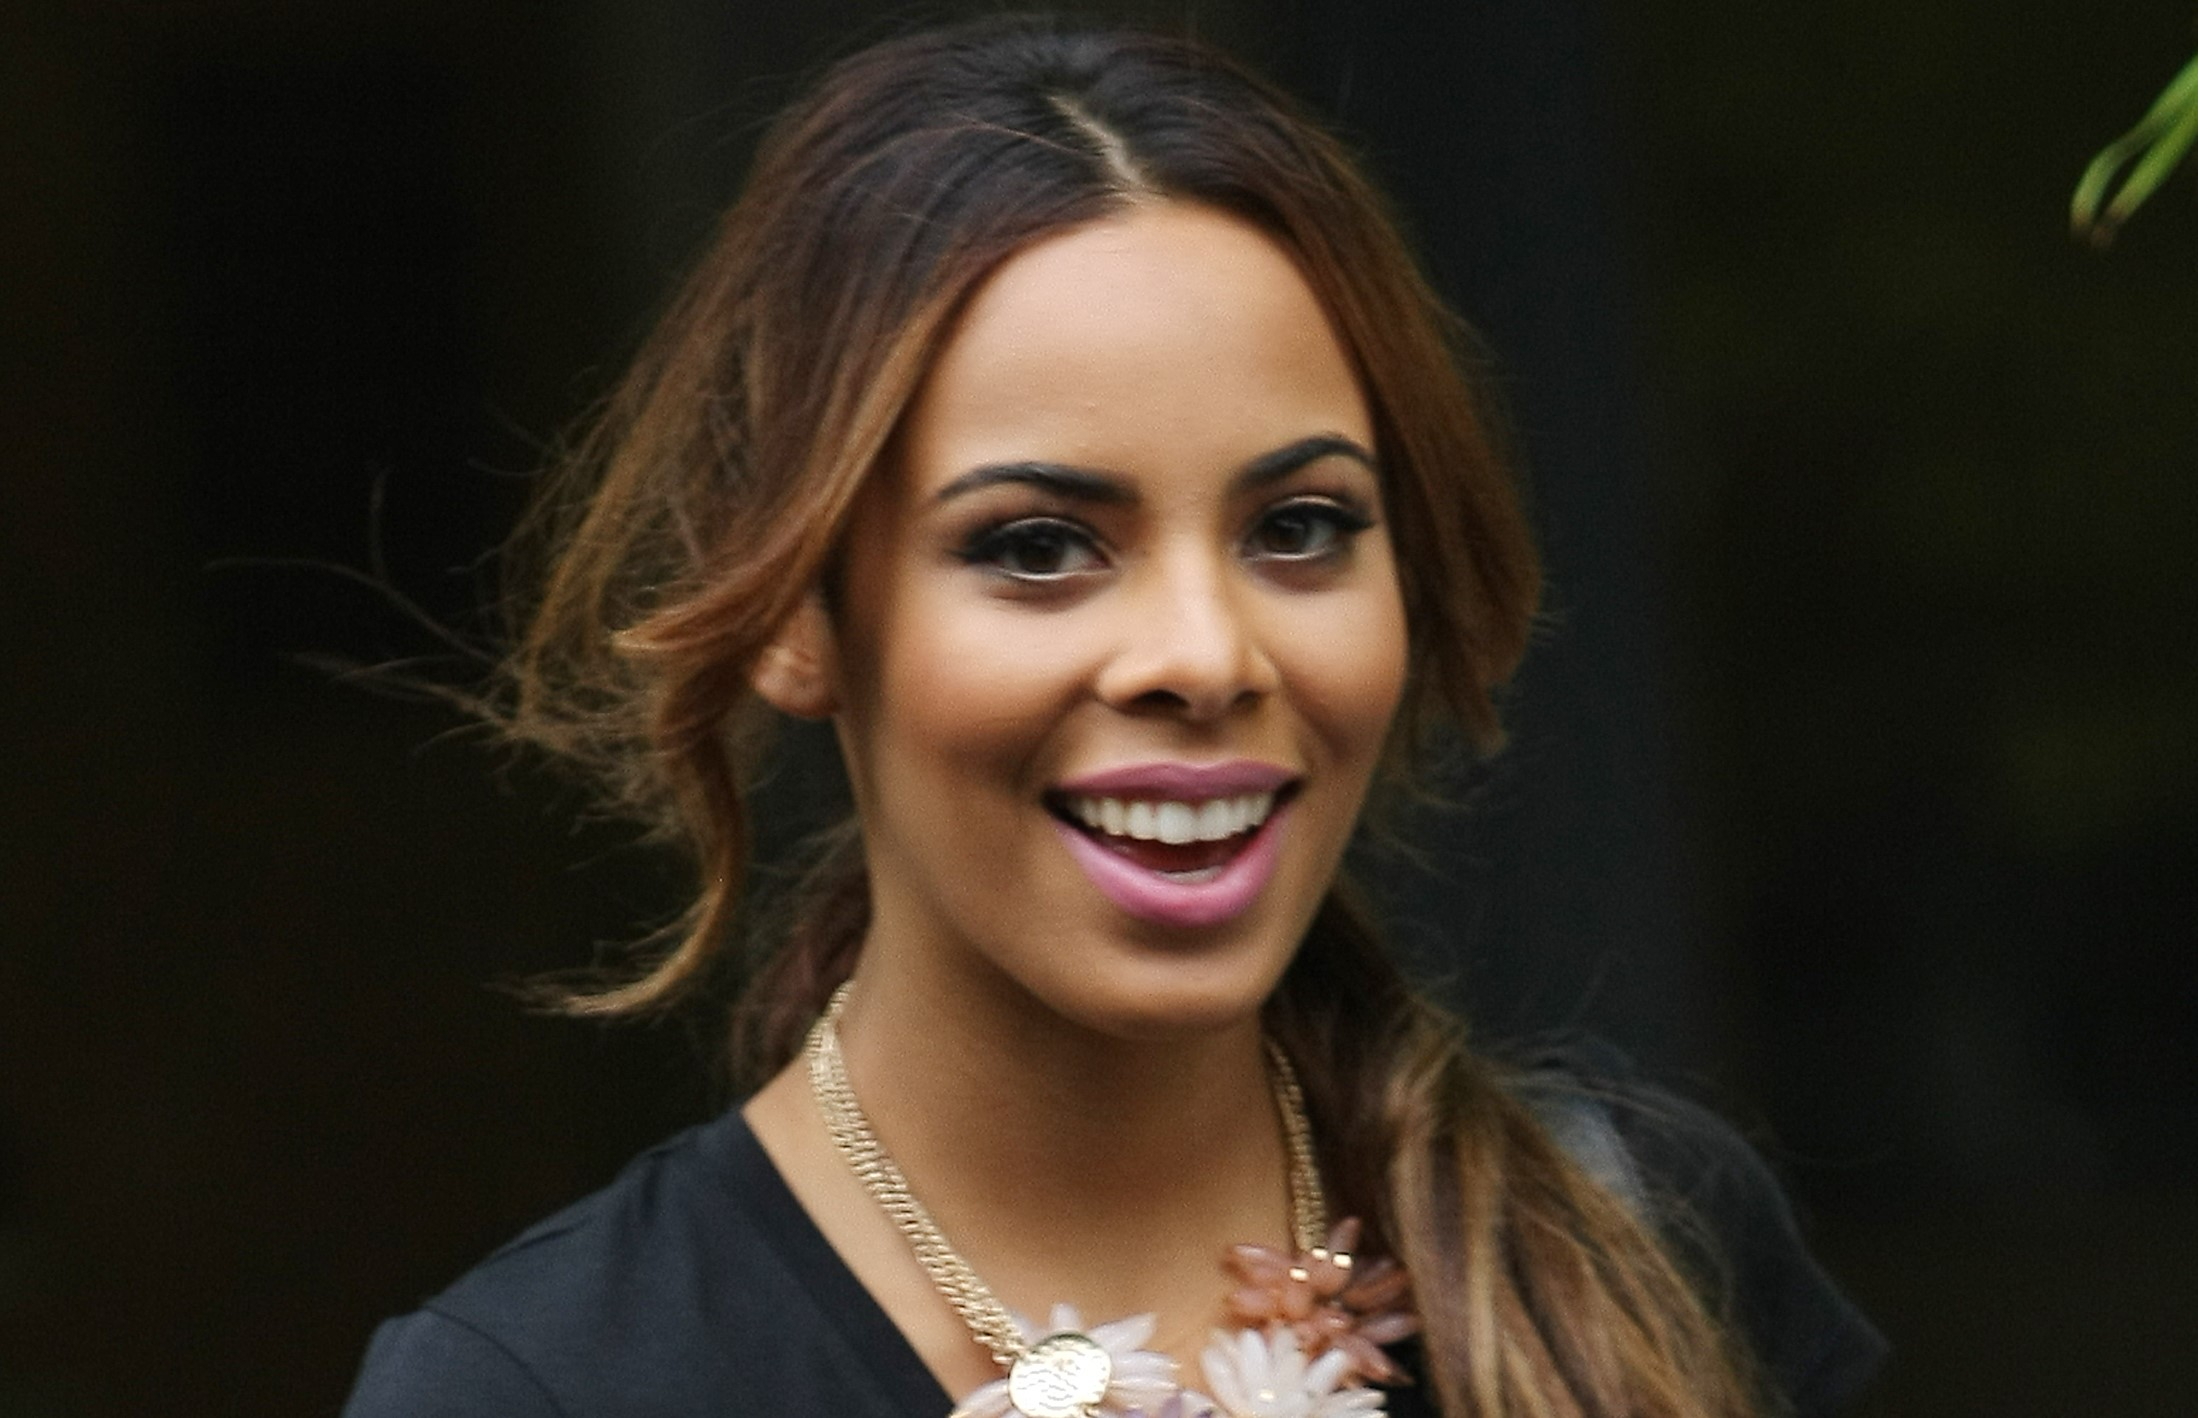 Pregnant Rochelle Humes eyeing up lavish £1.6k cot for her unborn son